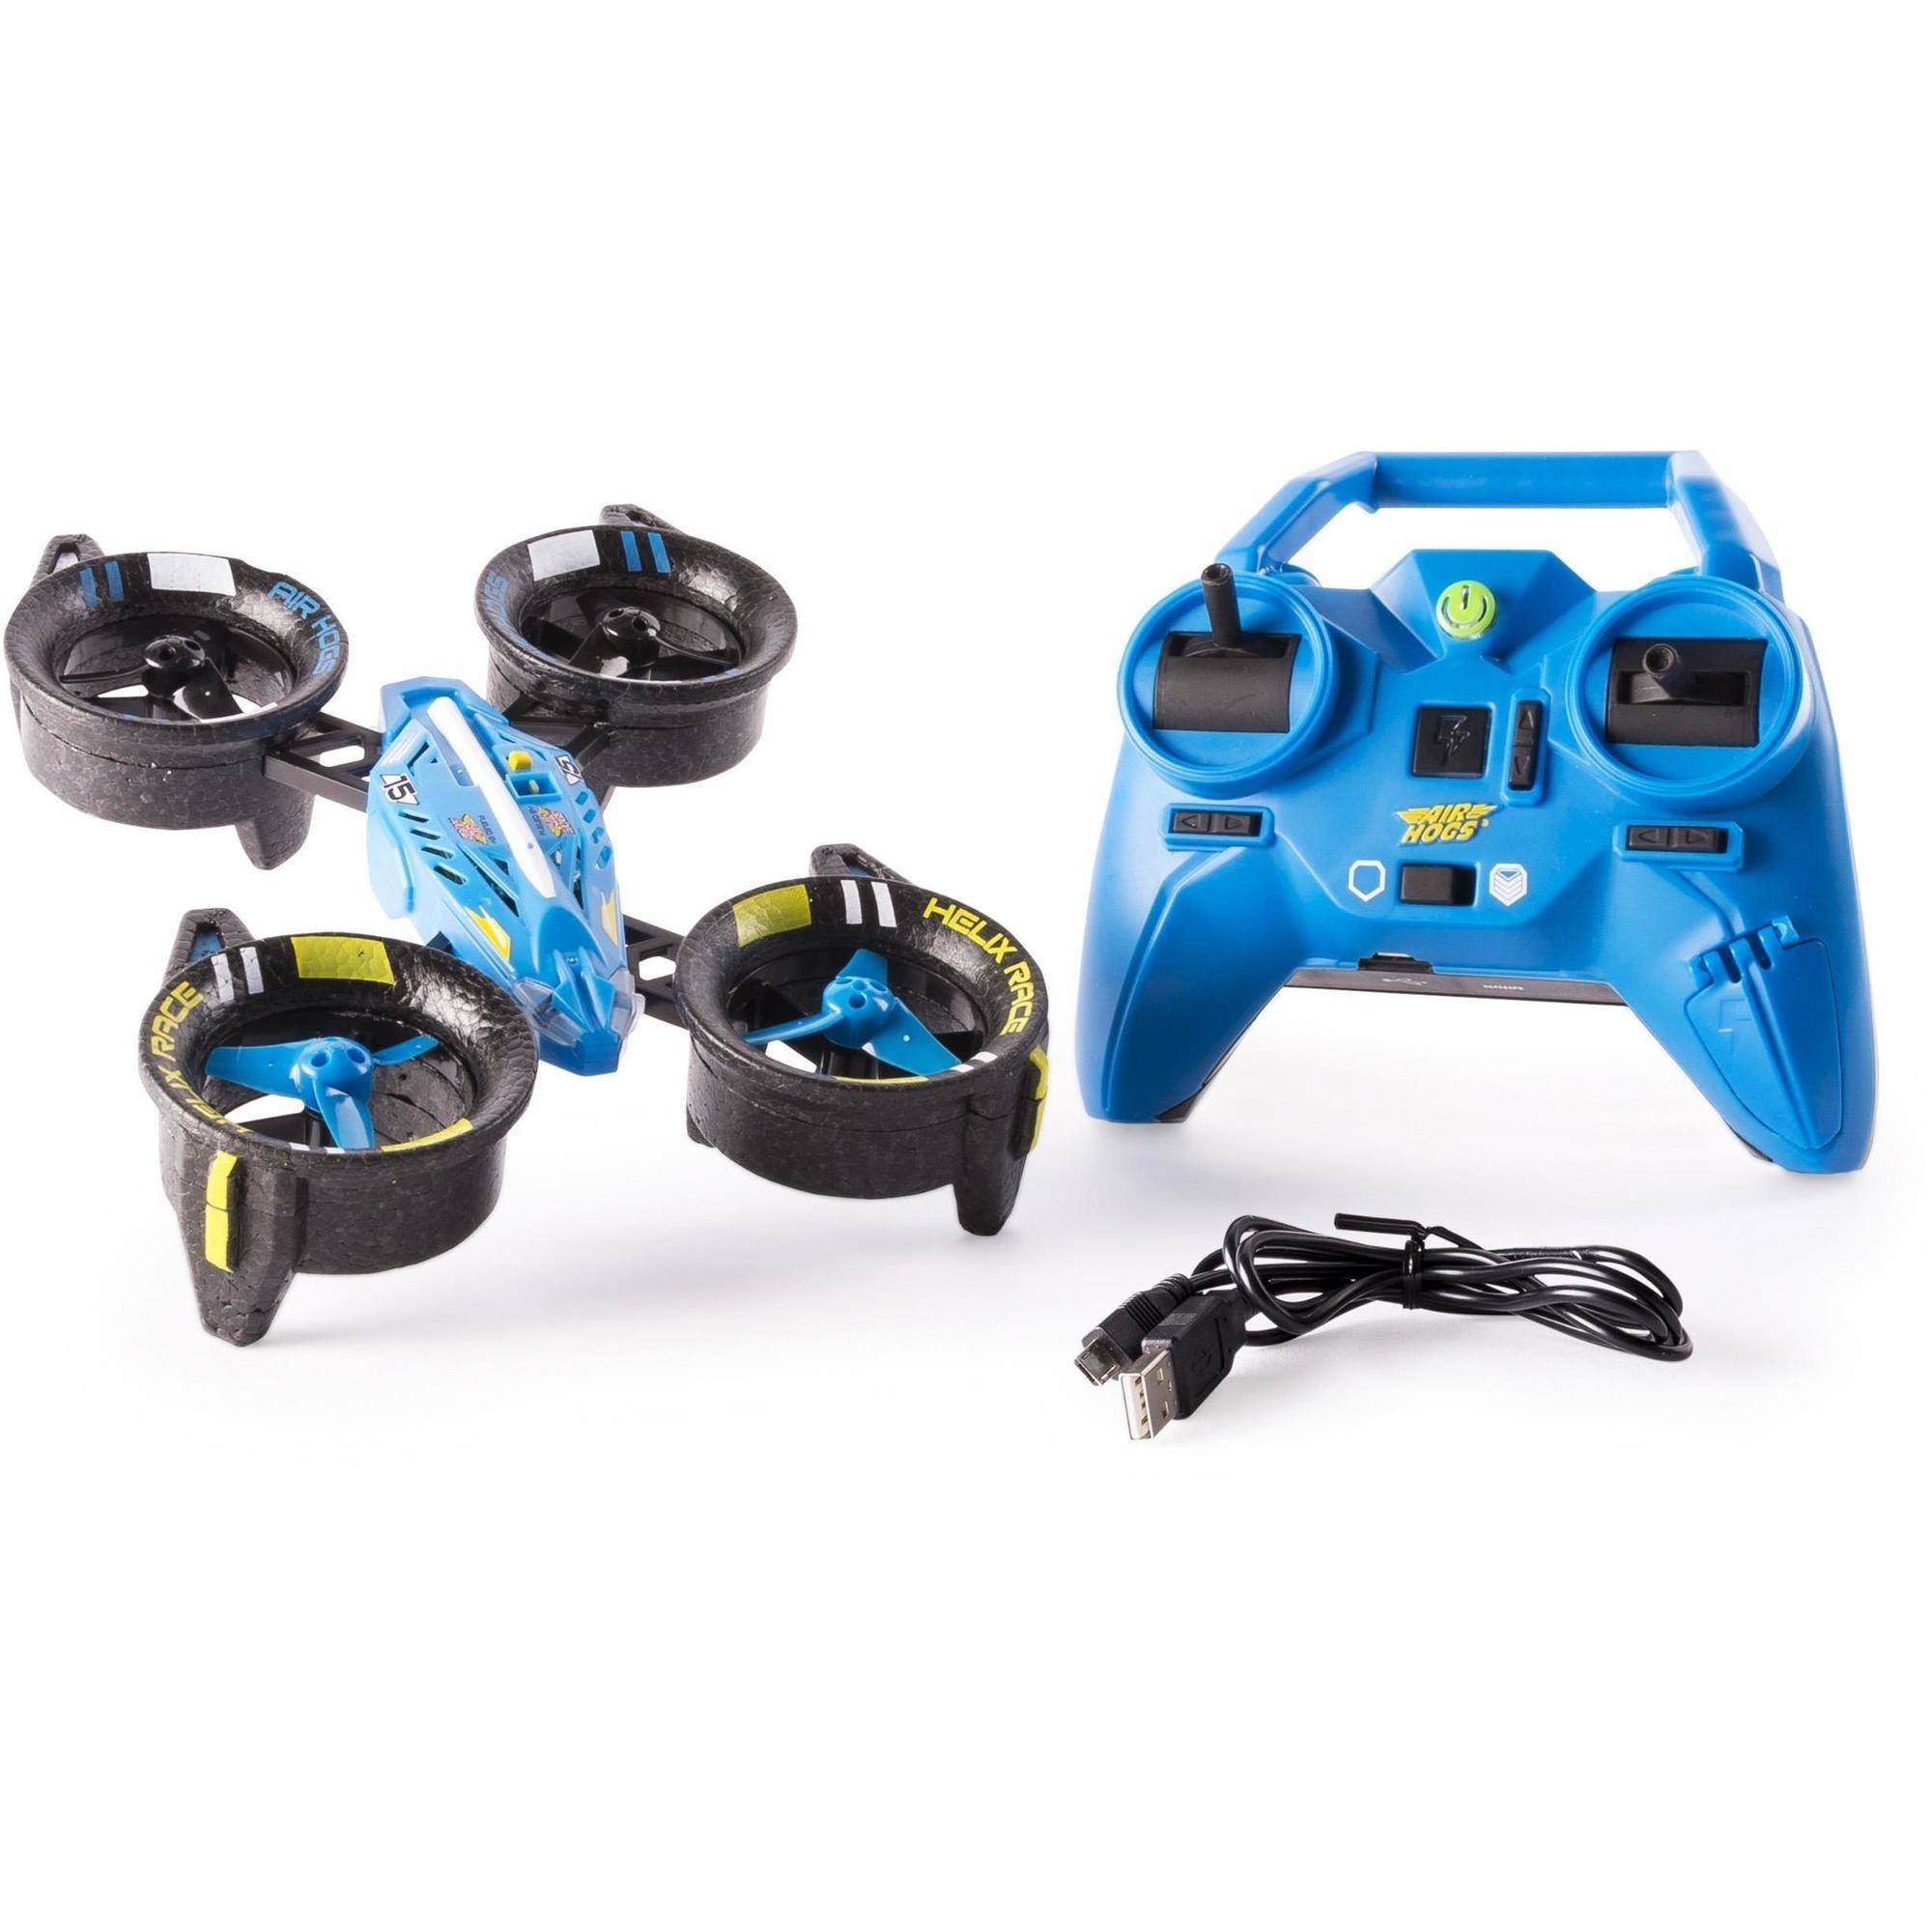 Air Hogs, Helix Race Drone, 2.4 GHZ, Blue RC Vehicle by Spin Master Ltd